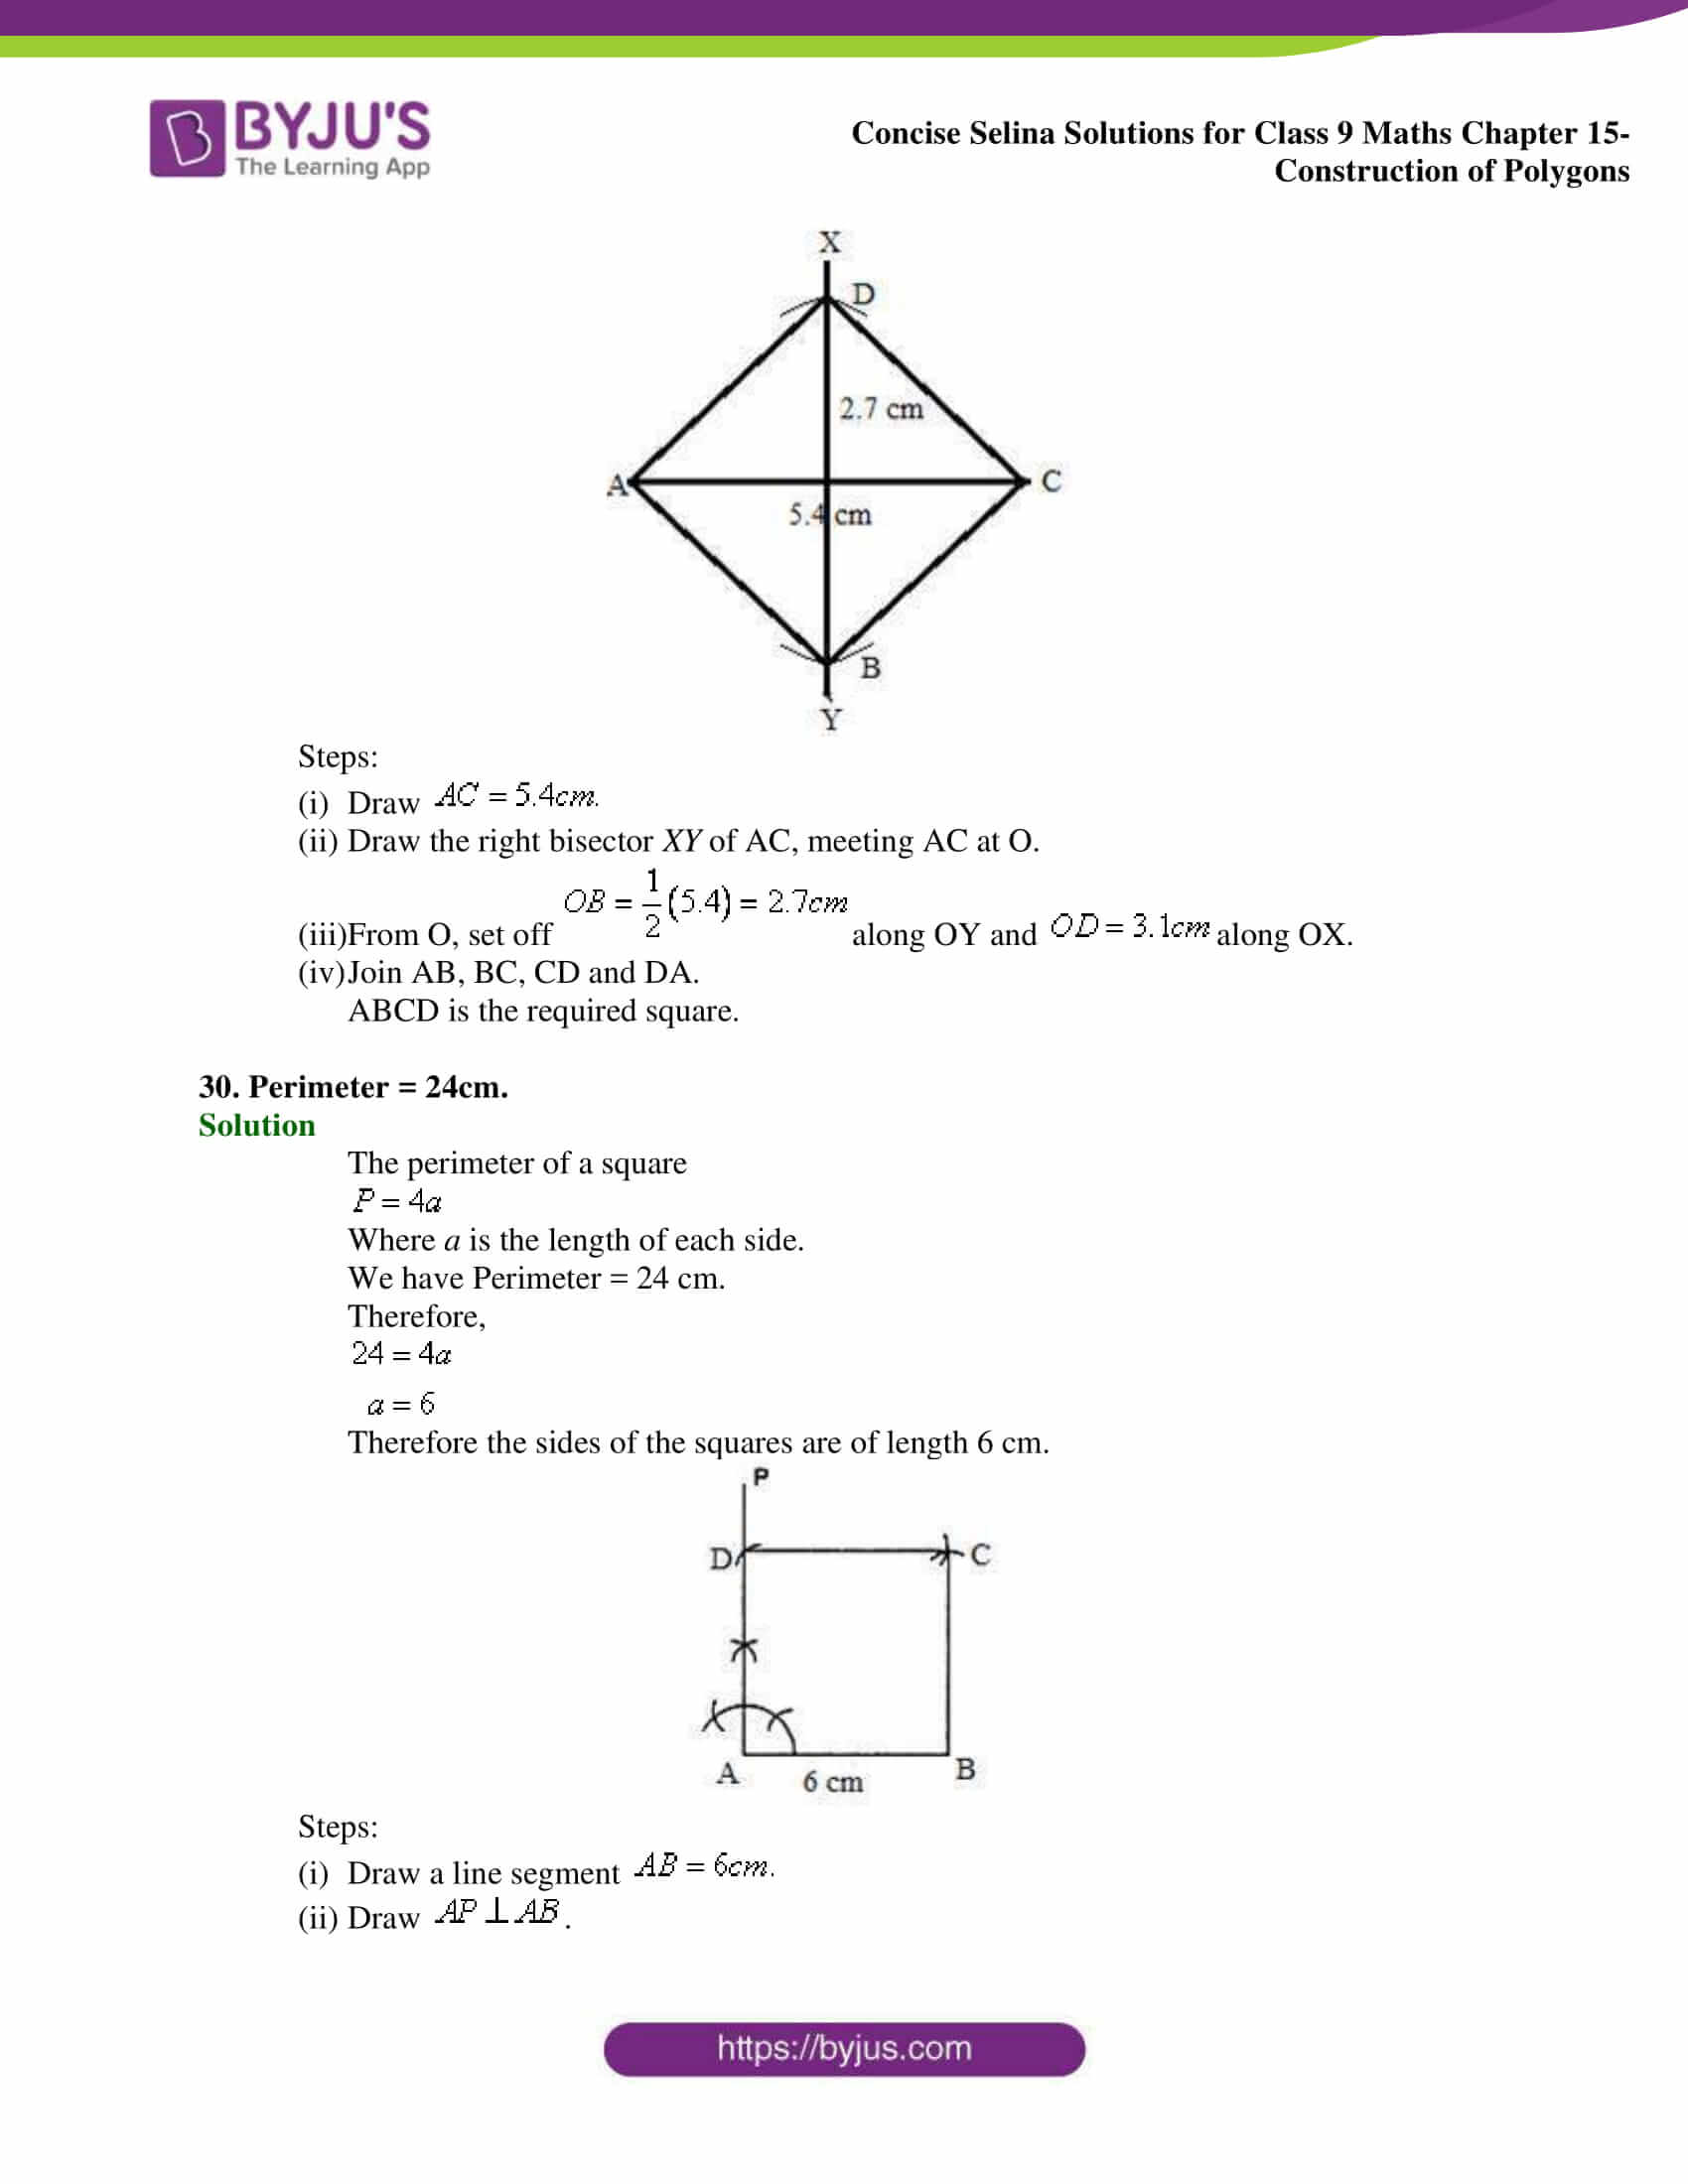 selina Solutions for Class 9 Maths Chapter 15 part 15